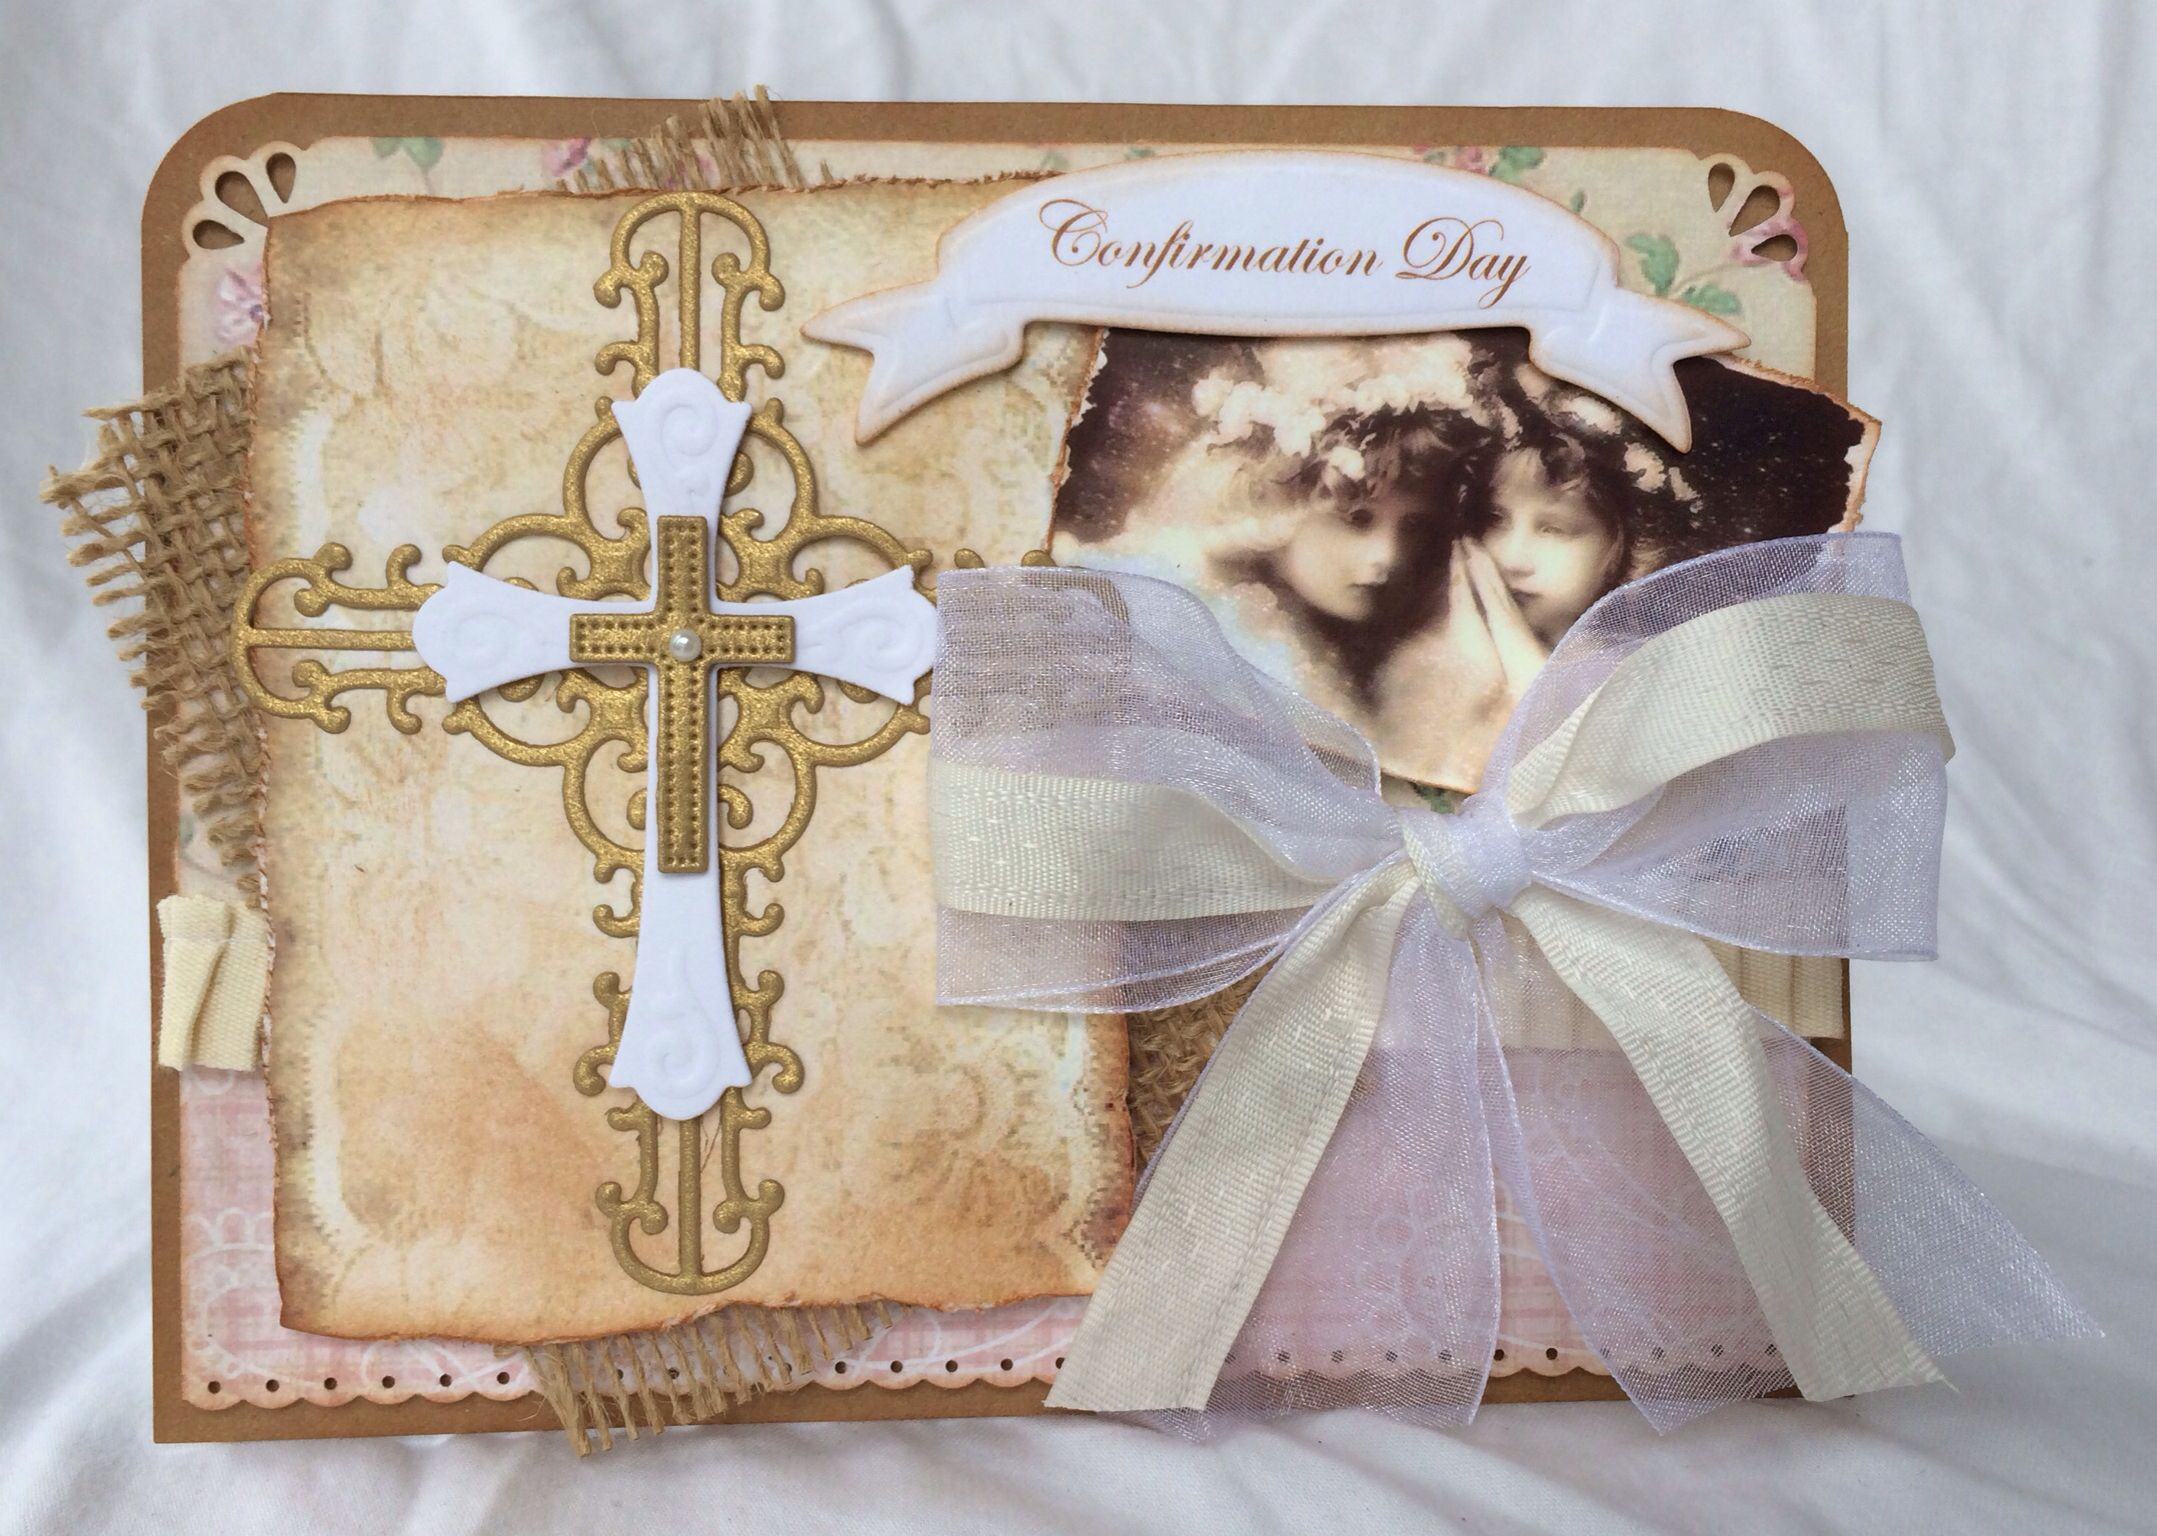 Beautiful Confirmation handmade card. Vintage look. Using Spellbinders die and Victorian angels pic. Made by Craft Me a Card.